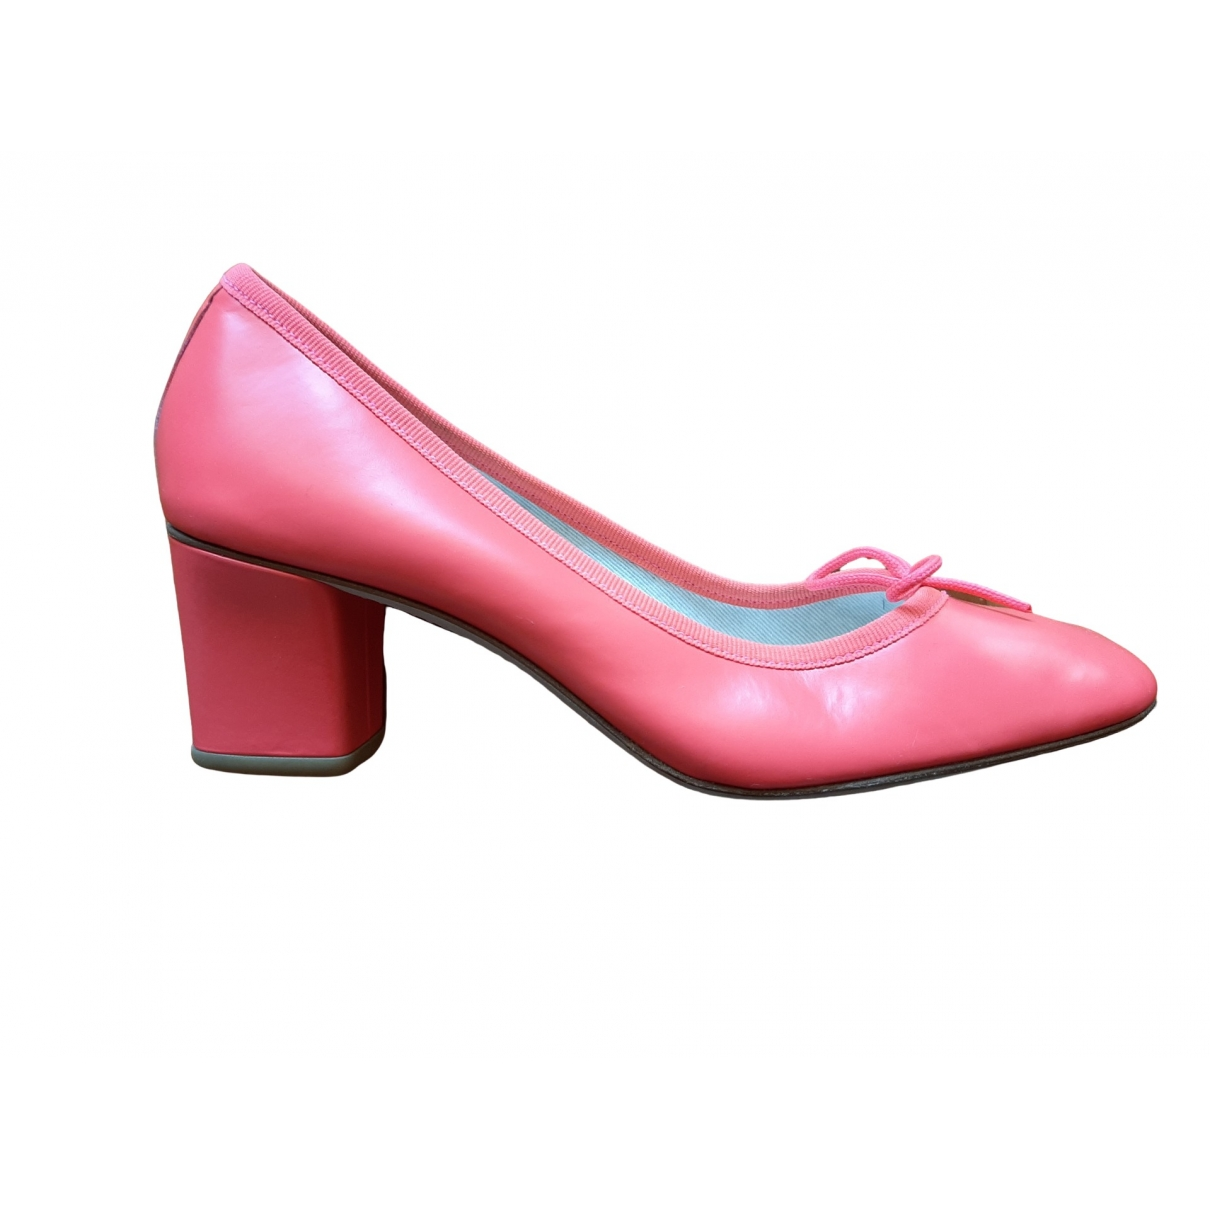 Repetto \N Pink Leather Heels for Women 37 EU